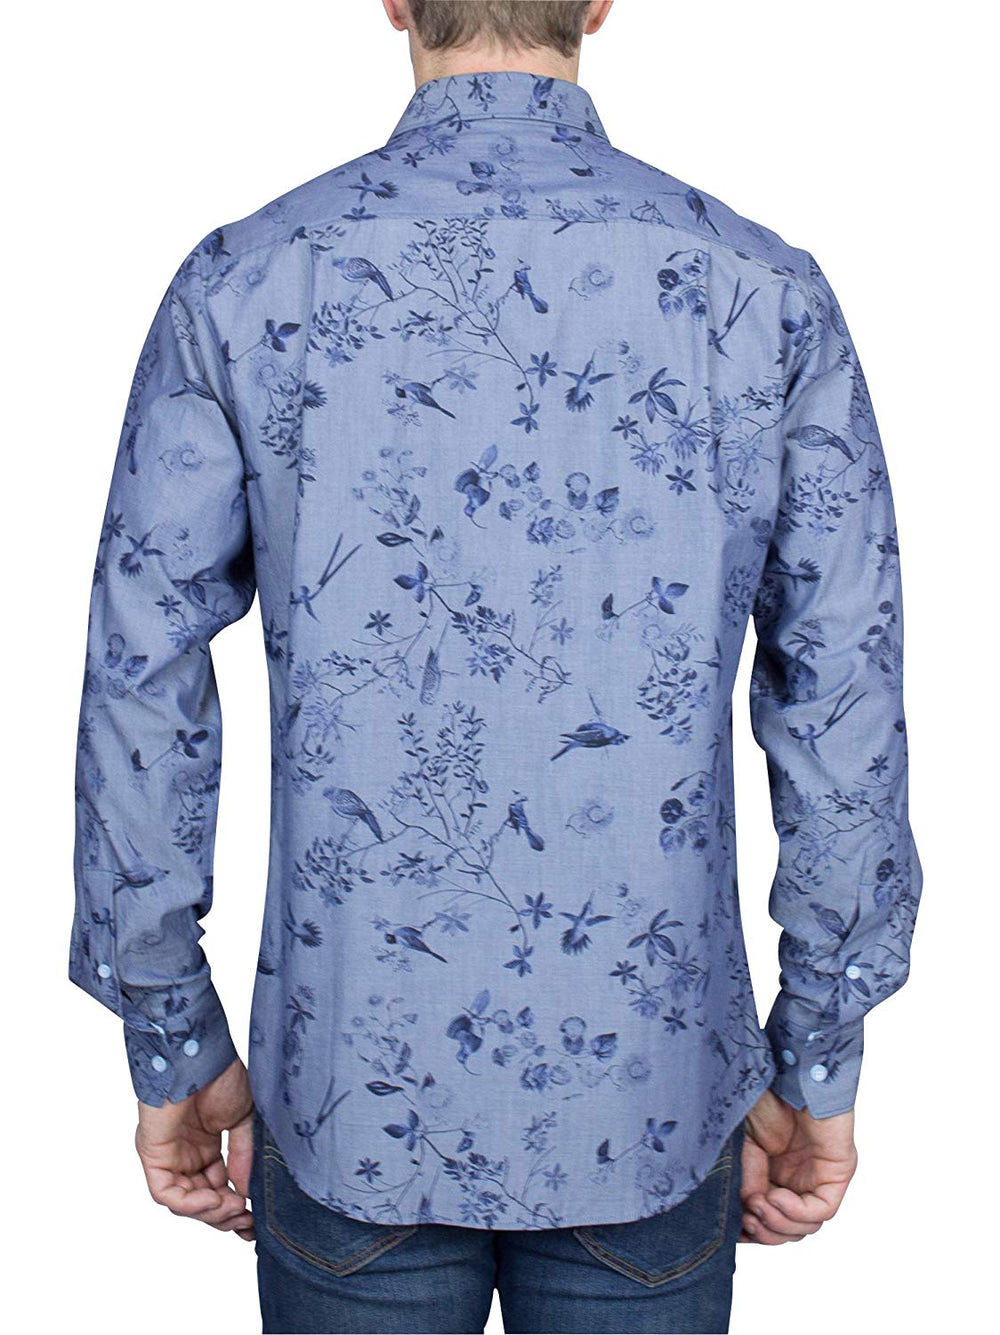 Thaddeus FRANK Men's Meadow Print Long Sleeve French Button Down Cotton Shirt with Cutaway Collar, Blues